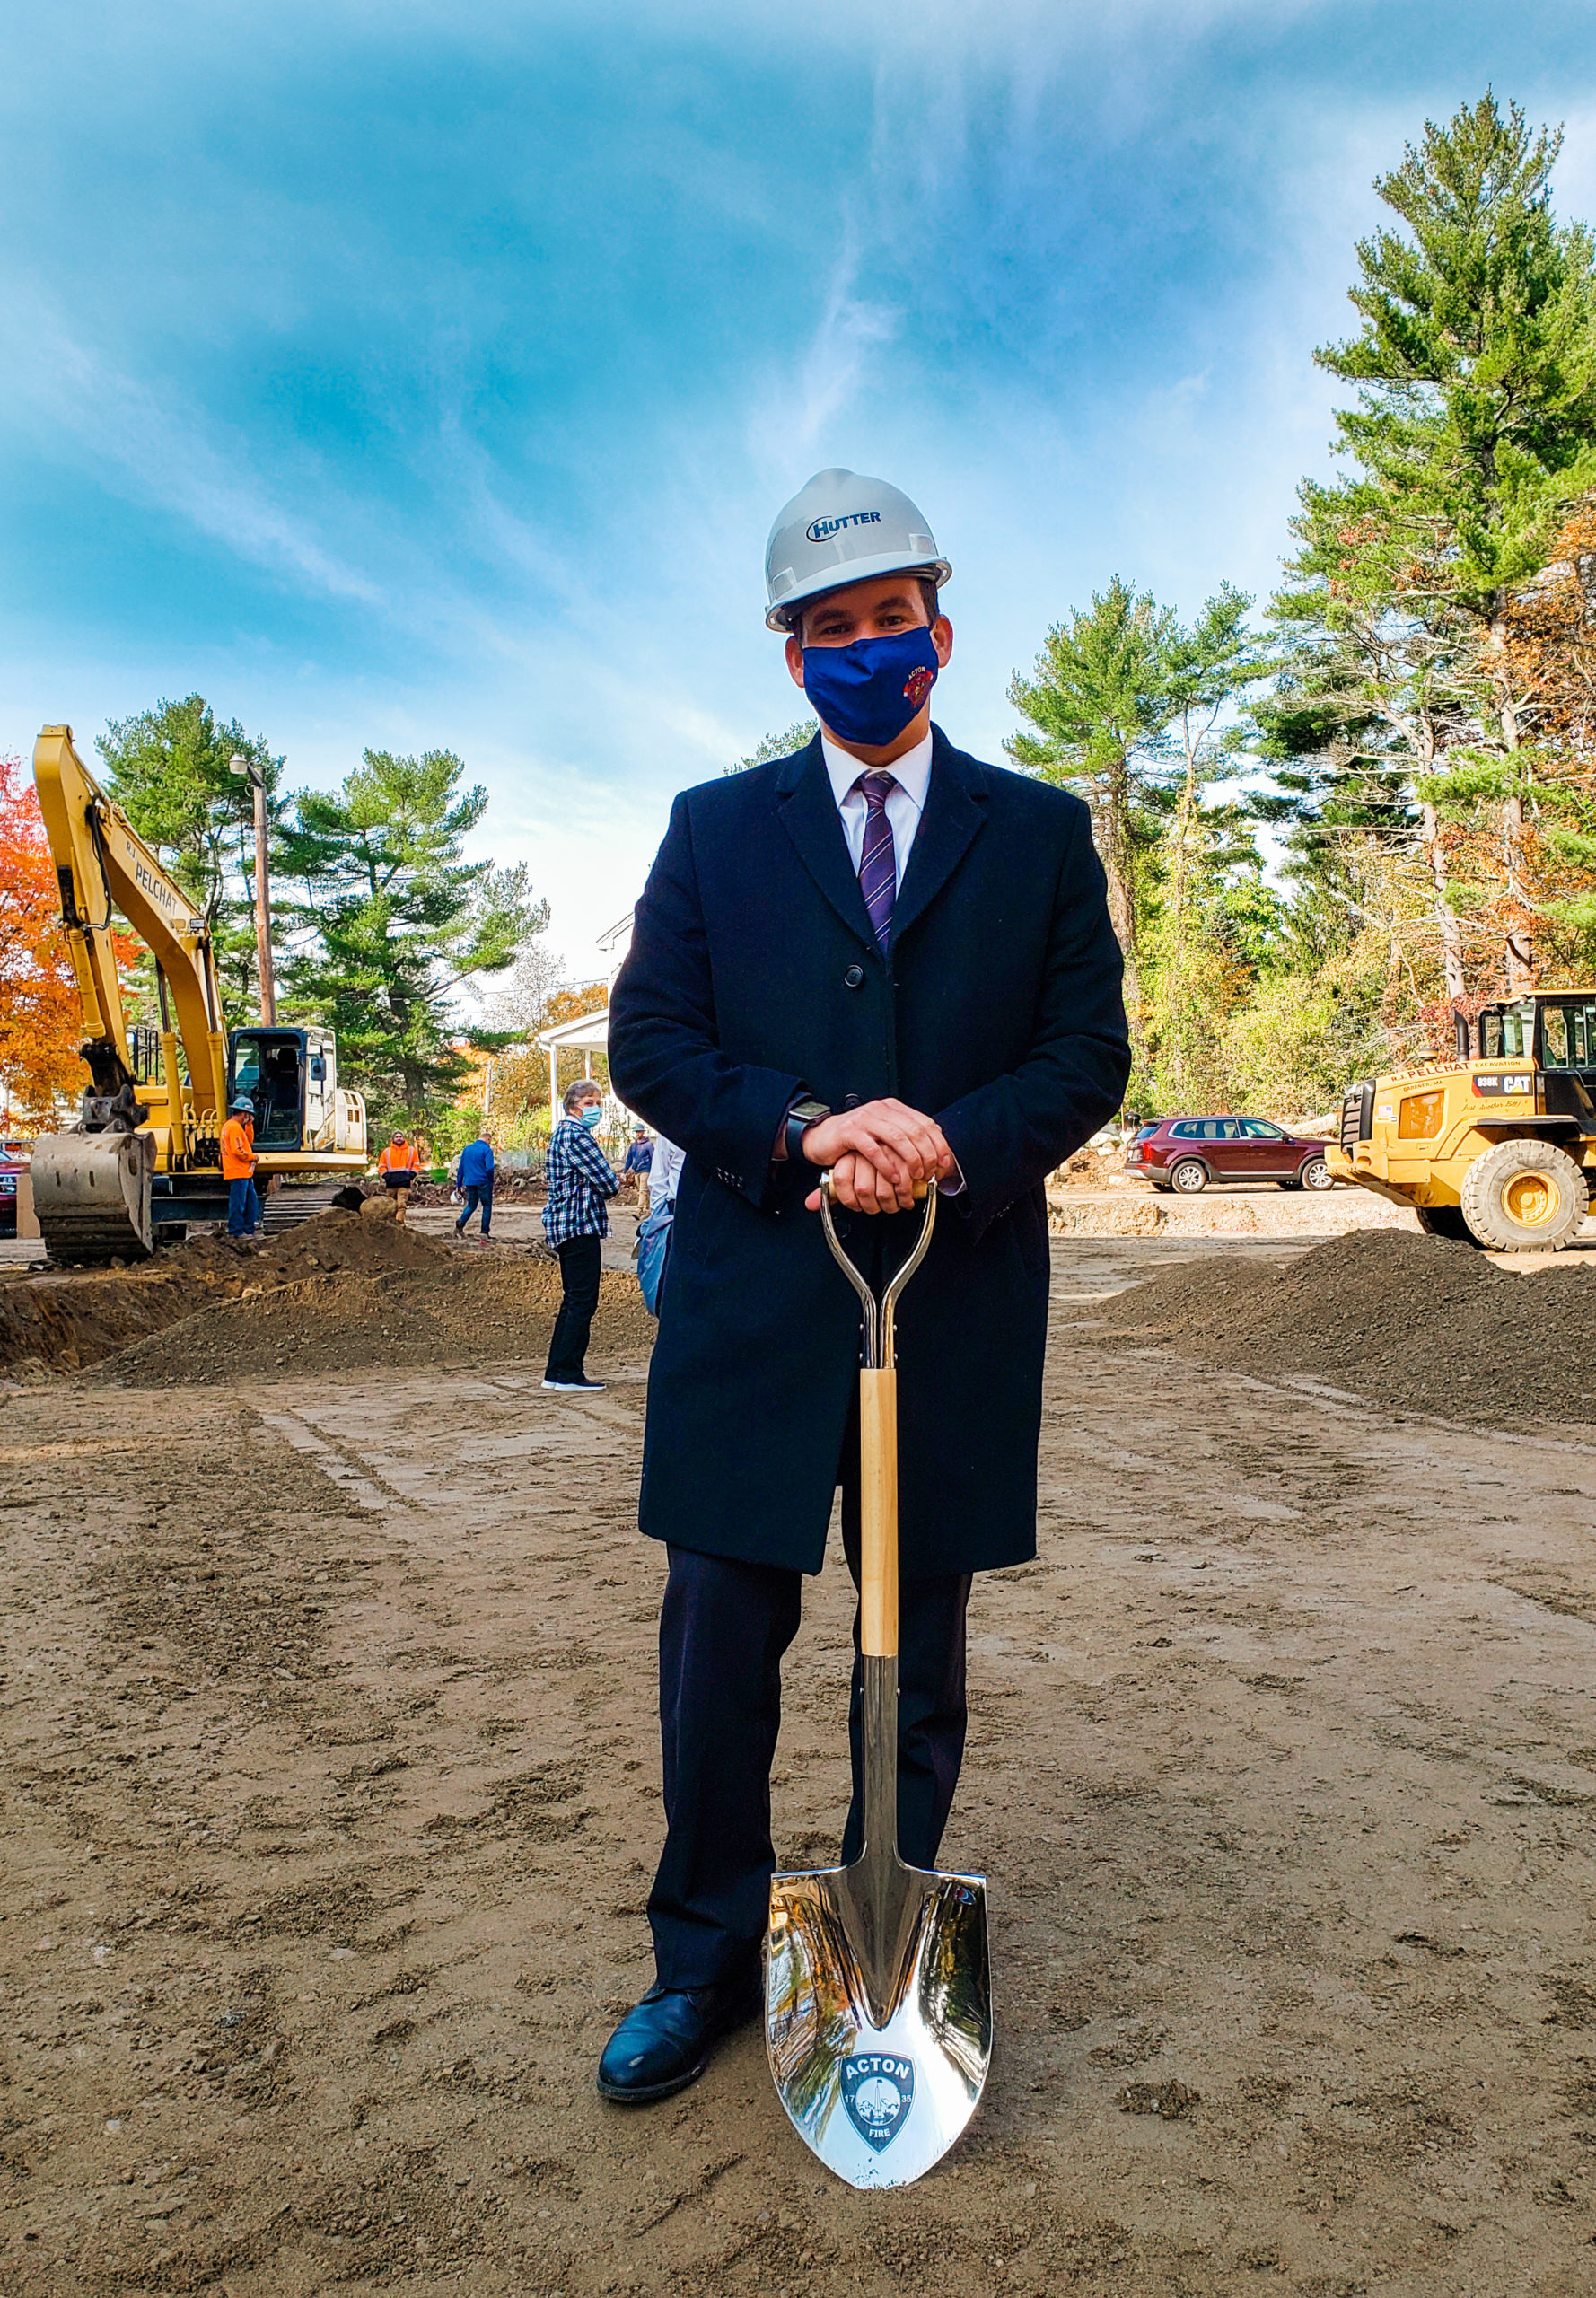 Rep. Sena after breaking ground at the site of the new North Acton Fire Station